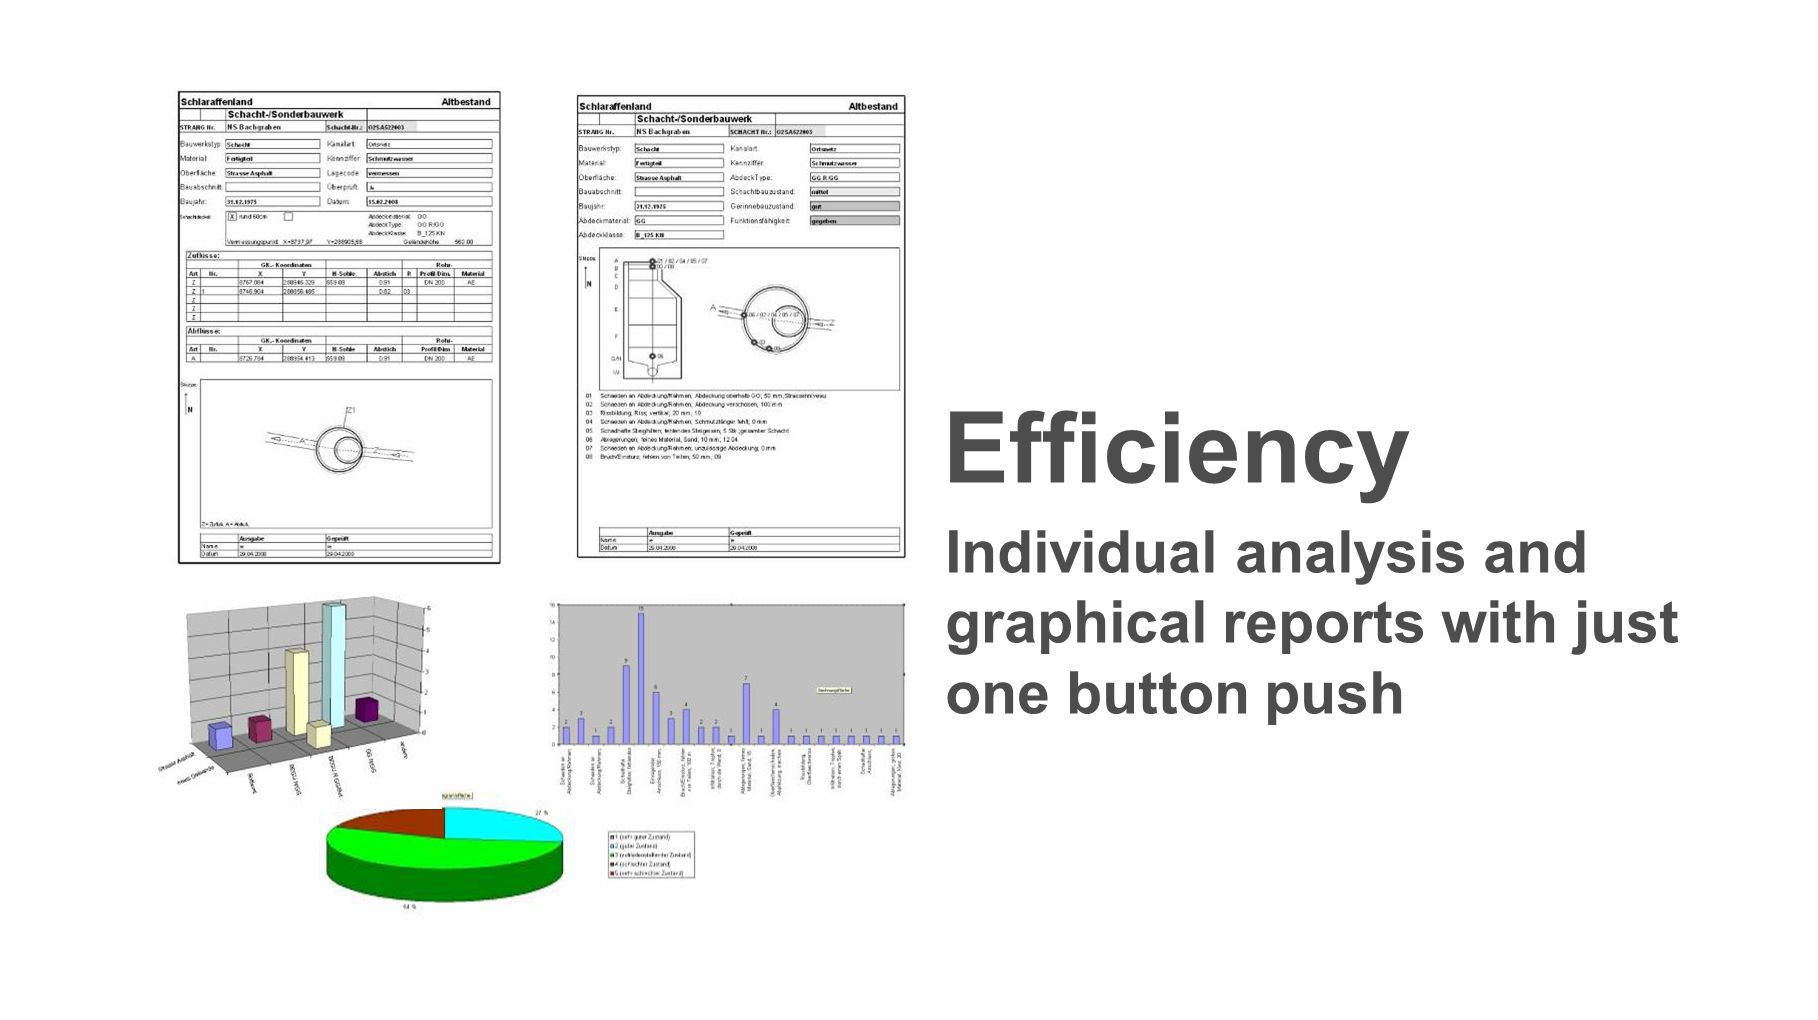 Efficiency Individual analysis and graphical reports with just one button push